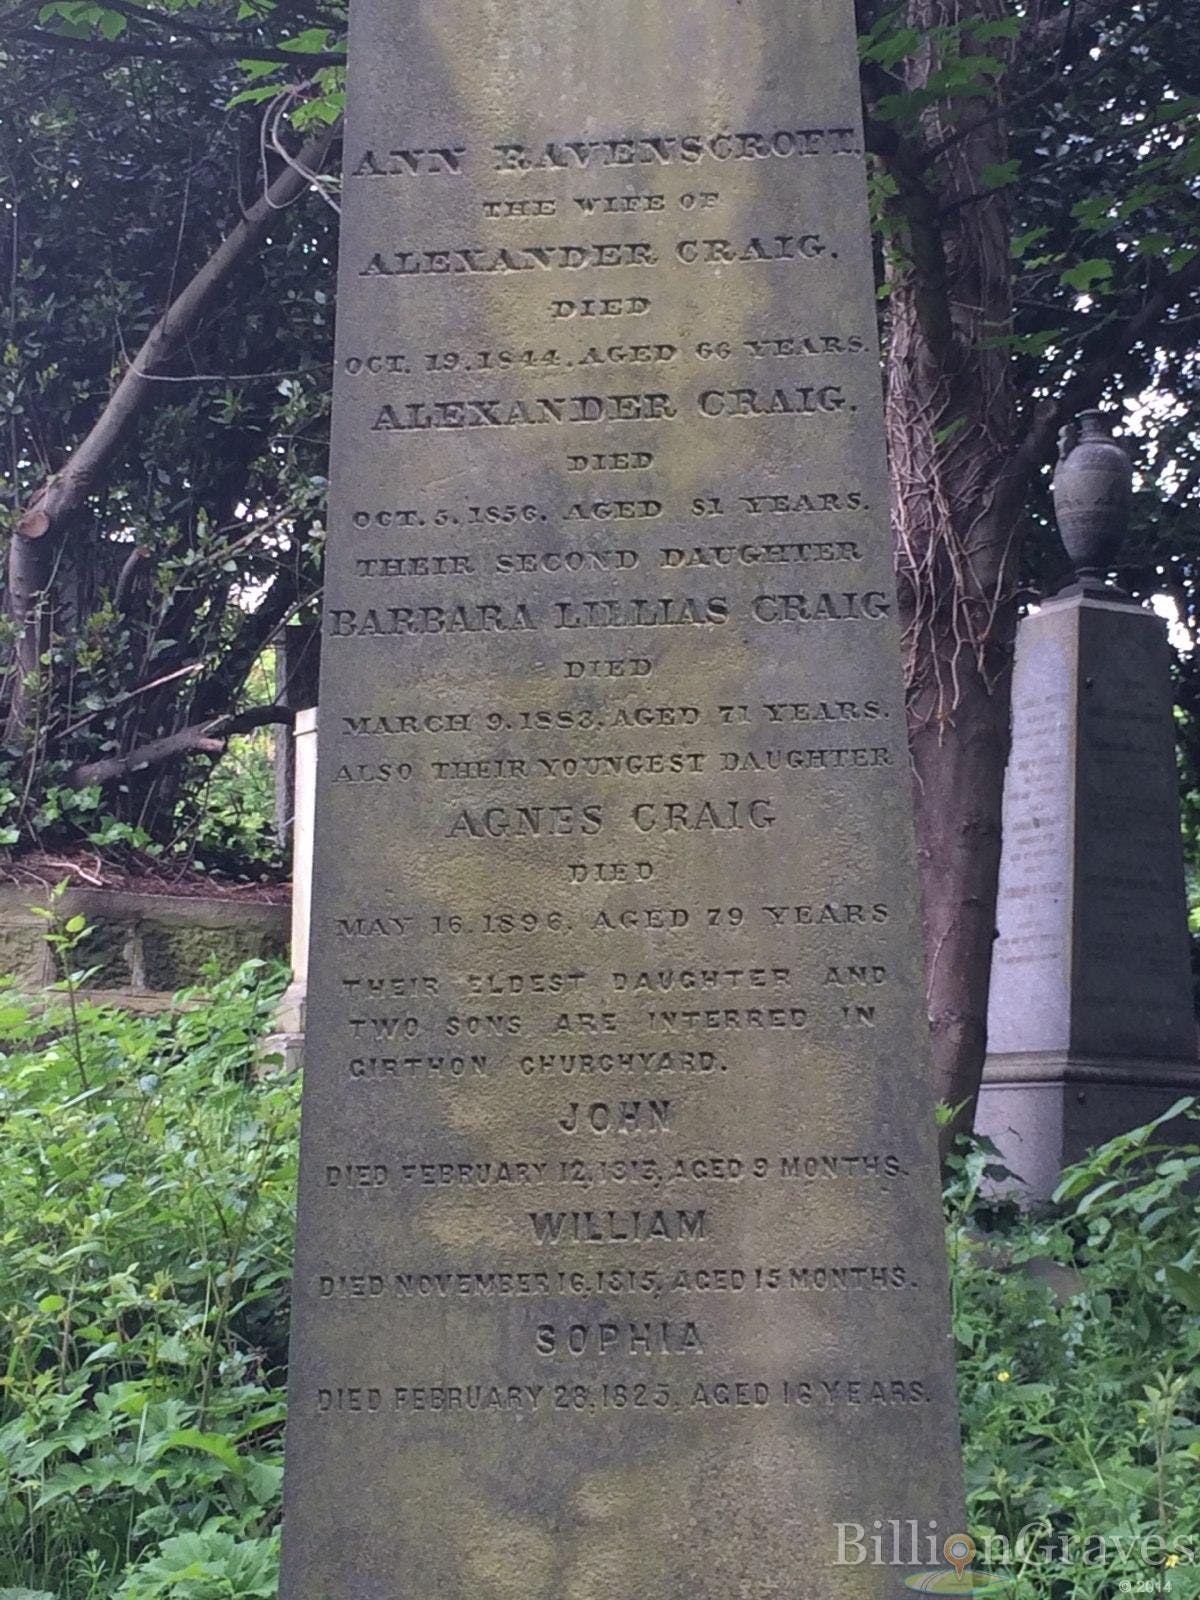 Scottish cemetery records